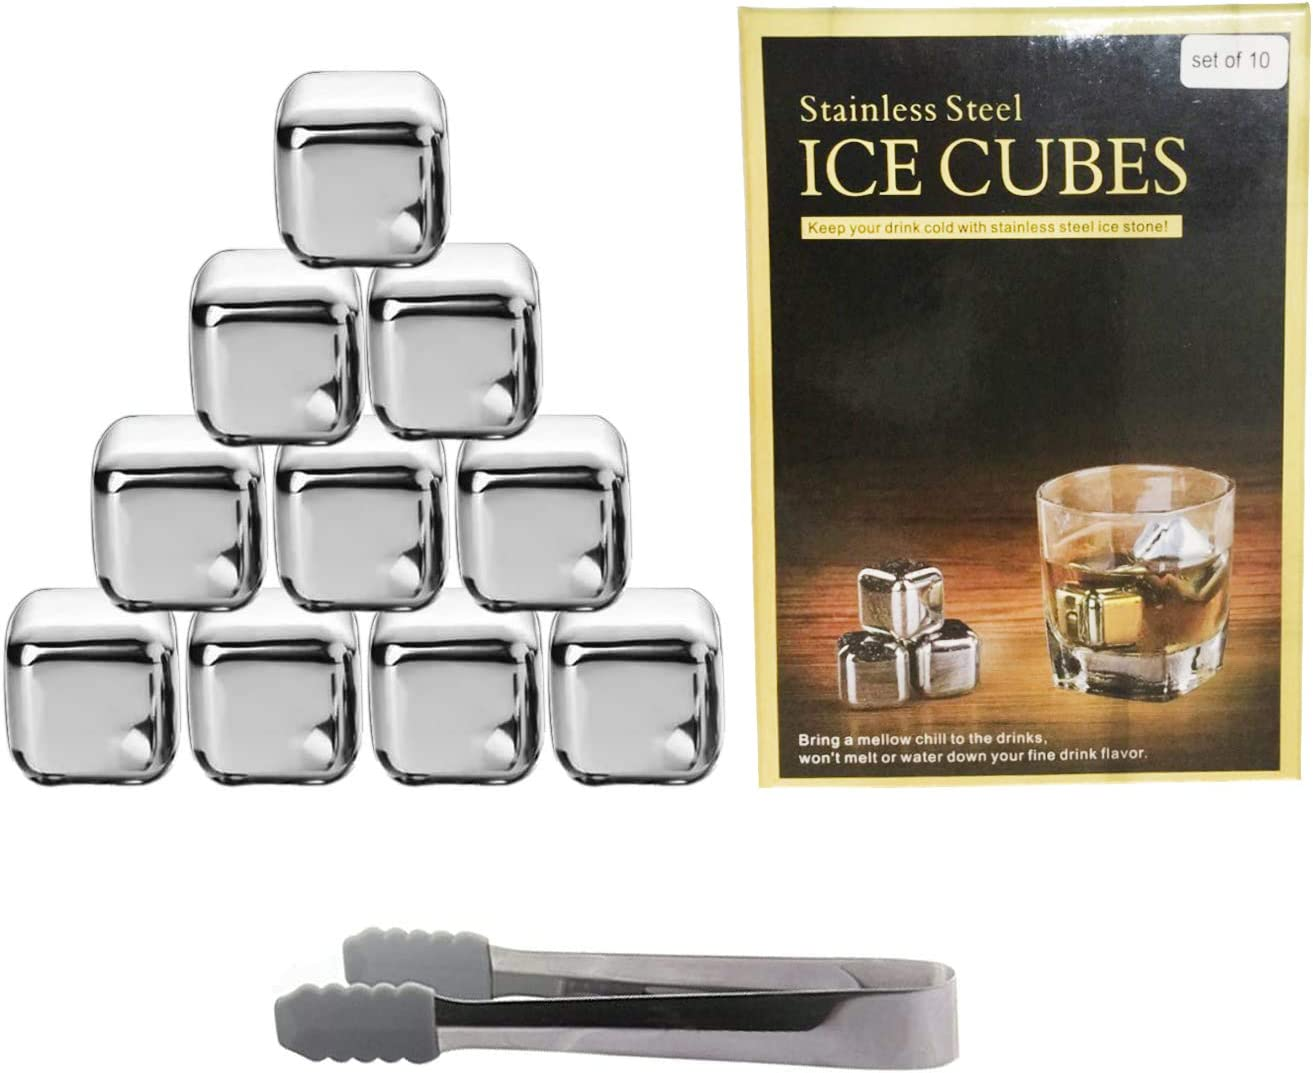 Cocktails or any Drinks Silver, 4 Wine Whiskey Stones,Reusable Stainless Steel Ice Cubes,Whisky Chilling Rocks Metal Ice with Tongs and Freezer Storage Tray forWhiskey